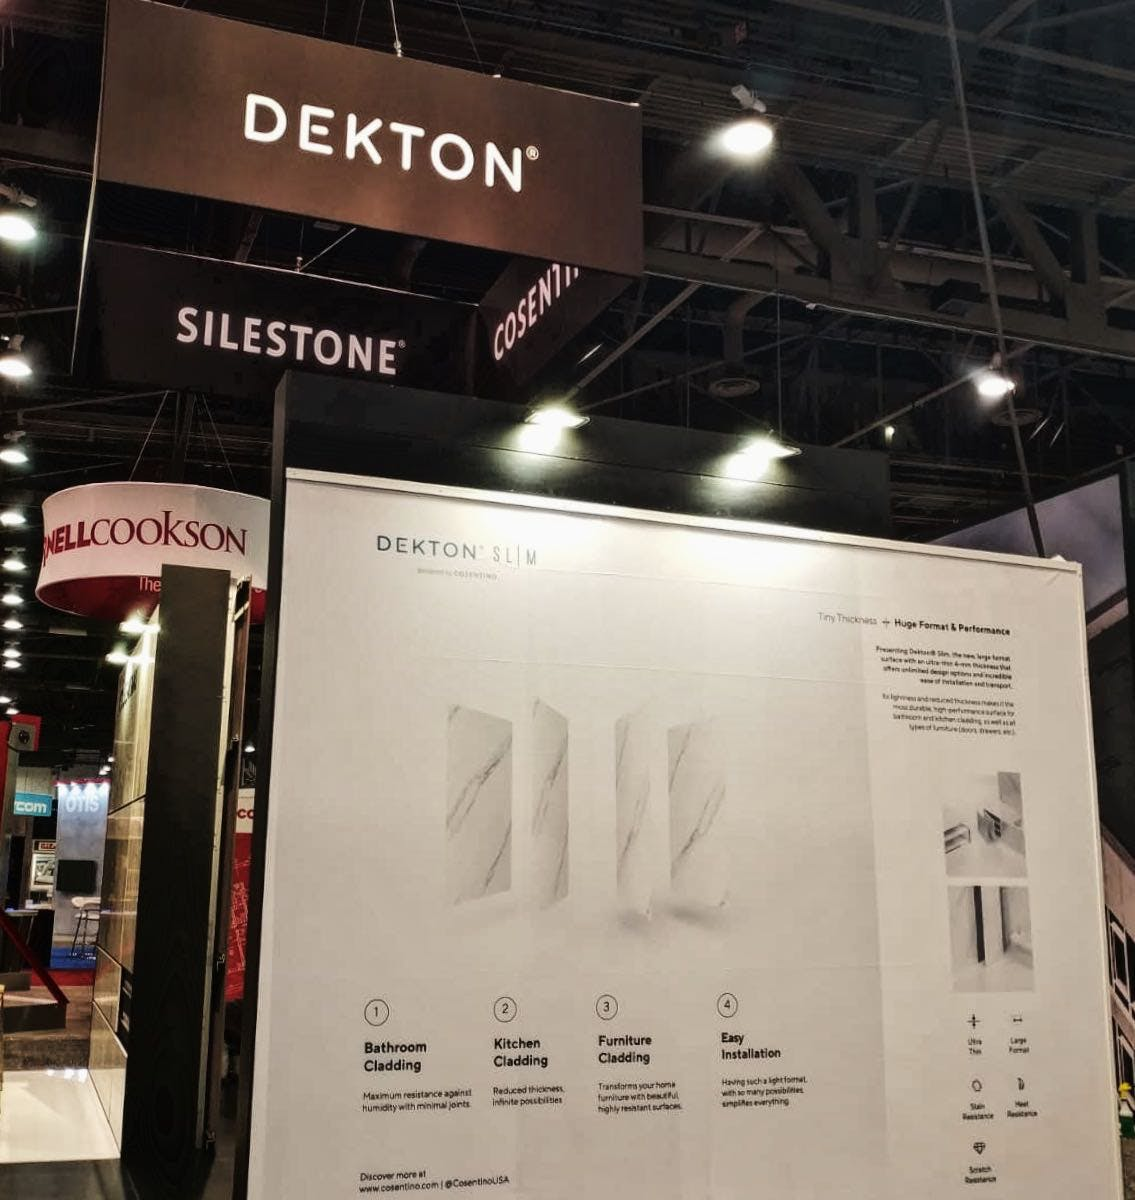 Image of Image from iOS 29 1 in Cosentino present at the American Institute of Architects National Convention - Cosentino